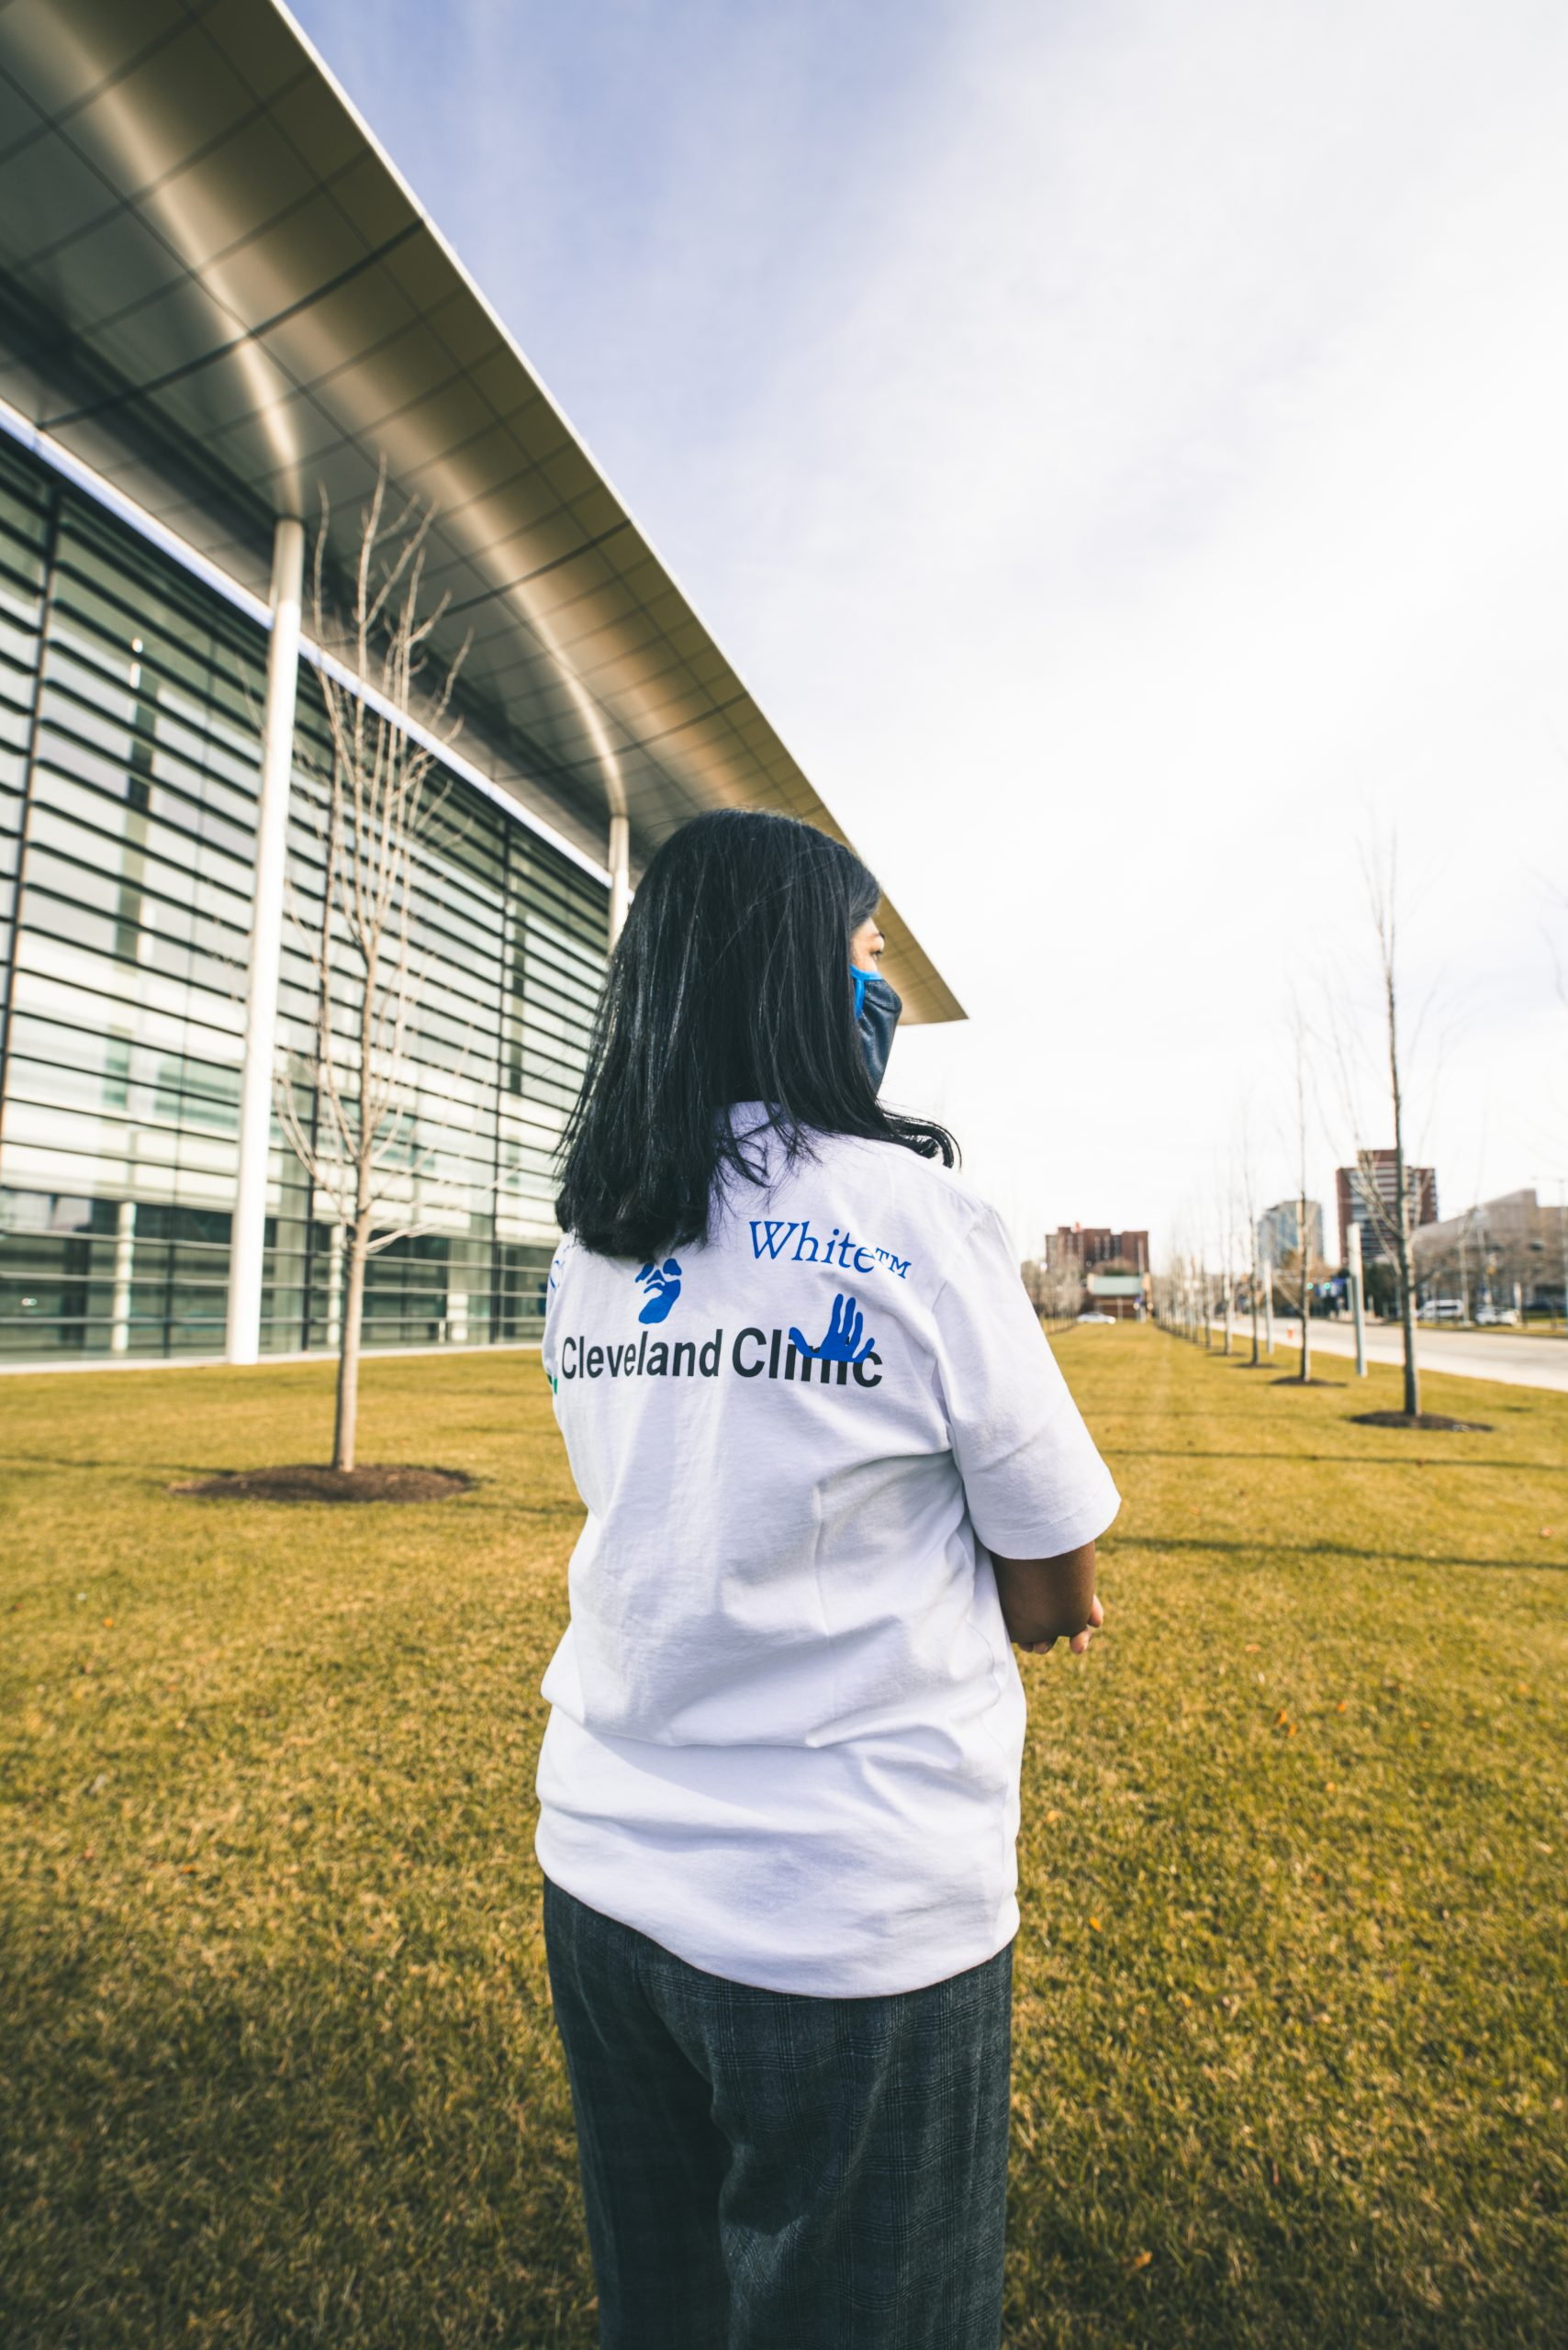 Virgil Abloh & Off-White Collaborate with Cleveland Clinic and Suay